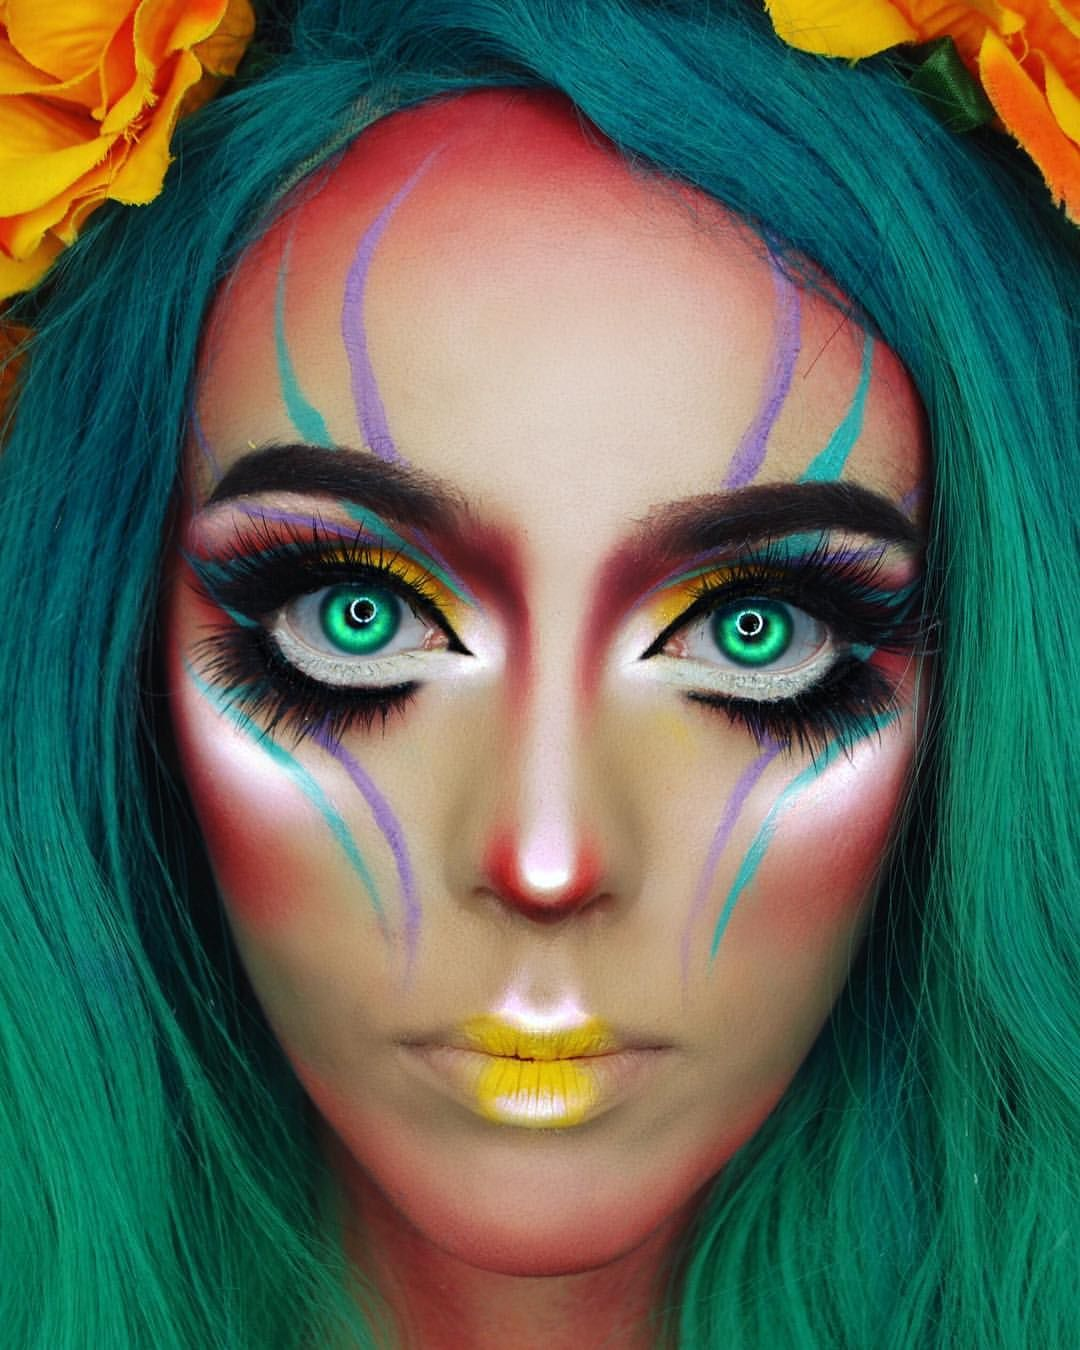 Keziah Joy (artbeautychaos) • Instagram Posts, Videos